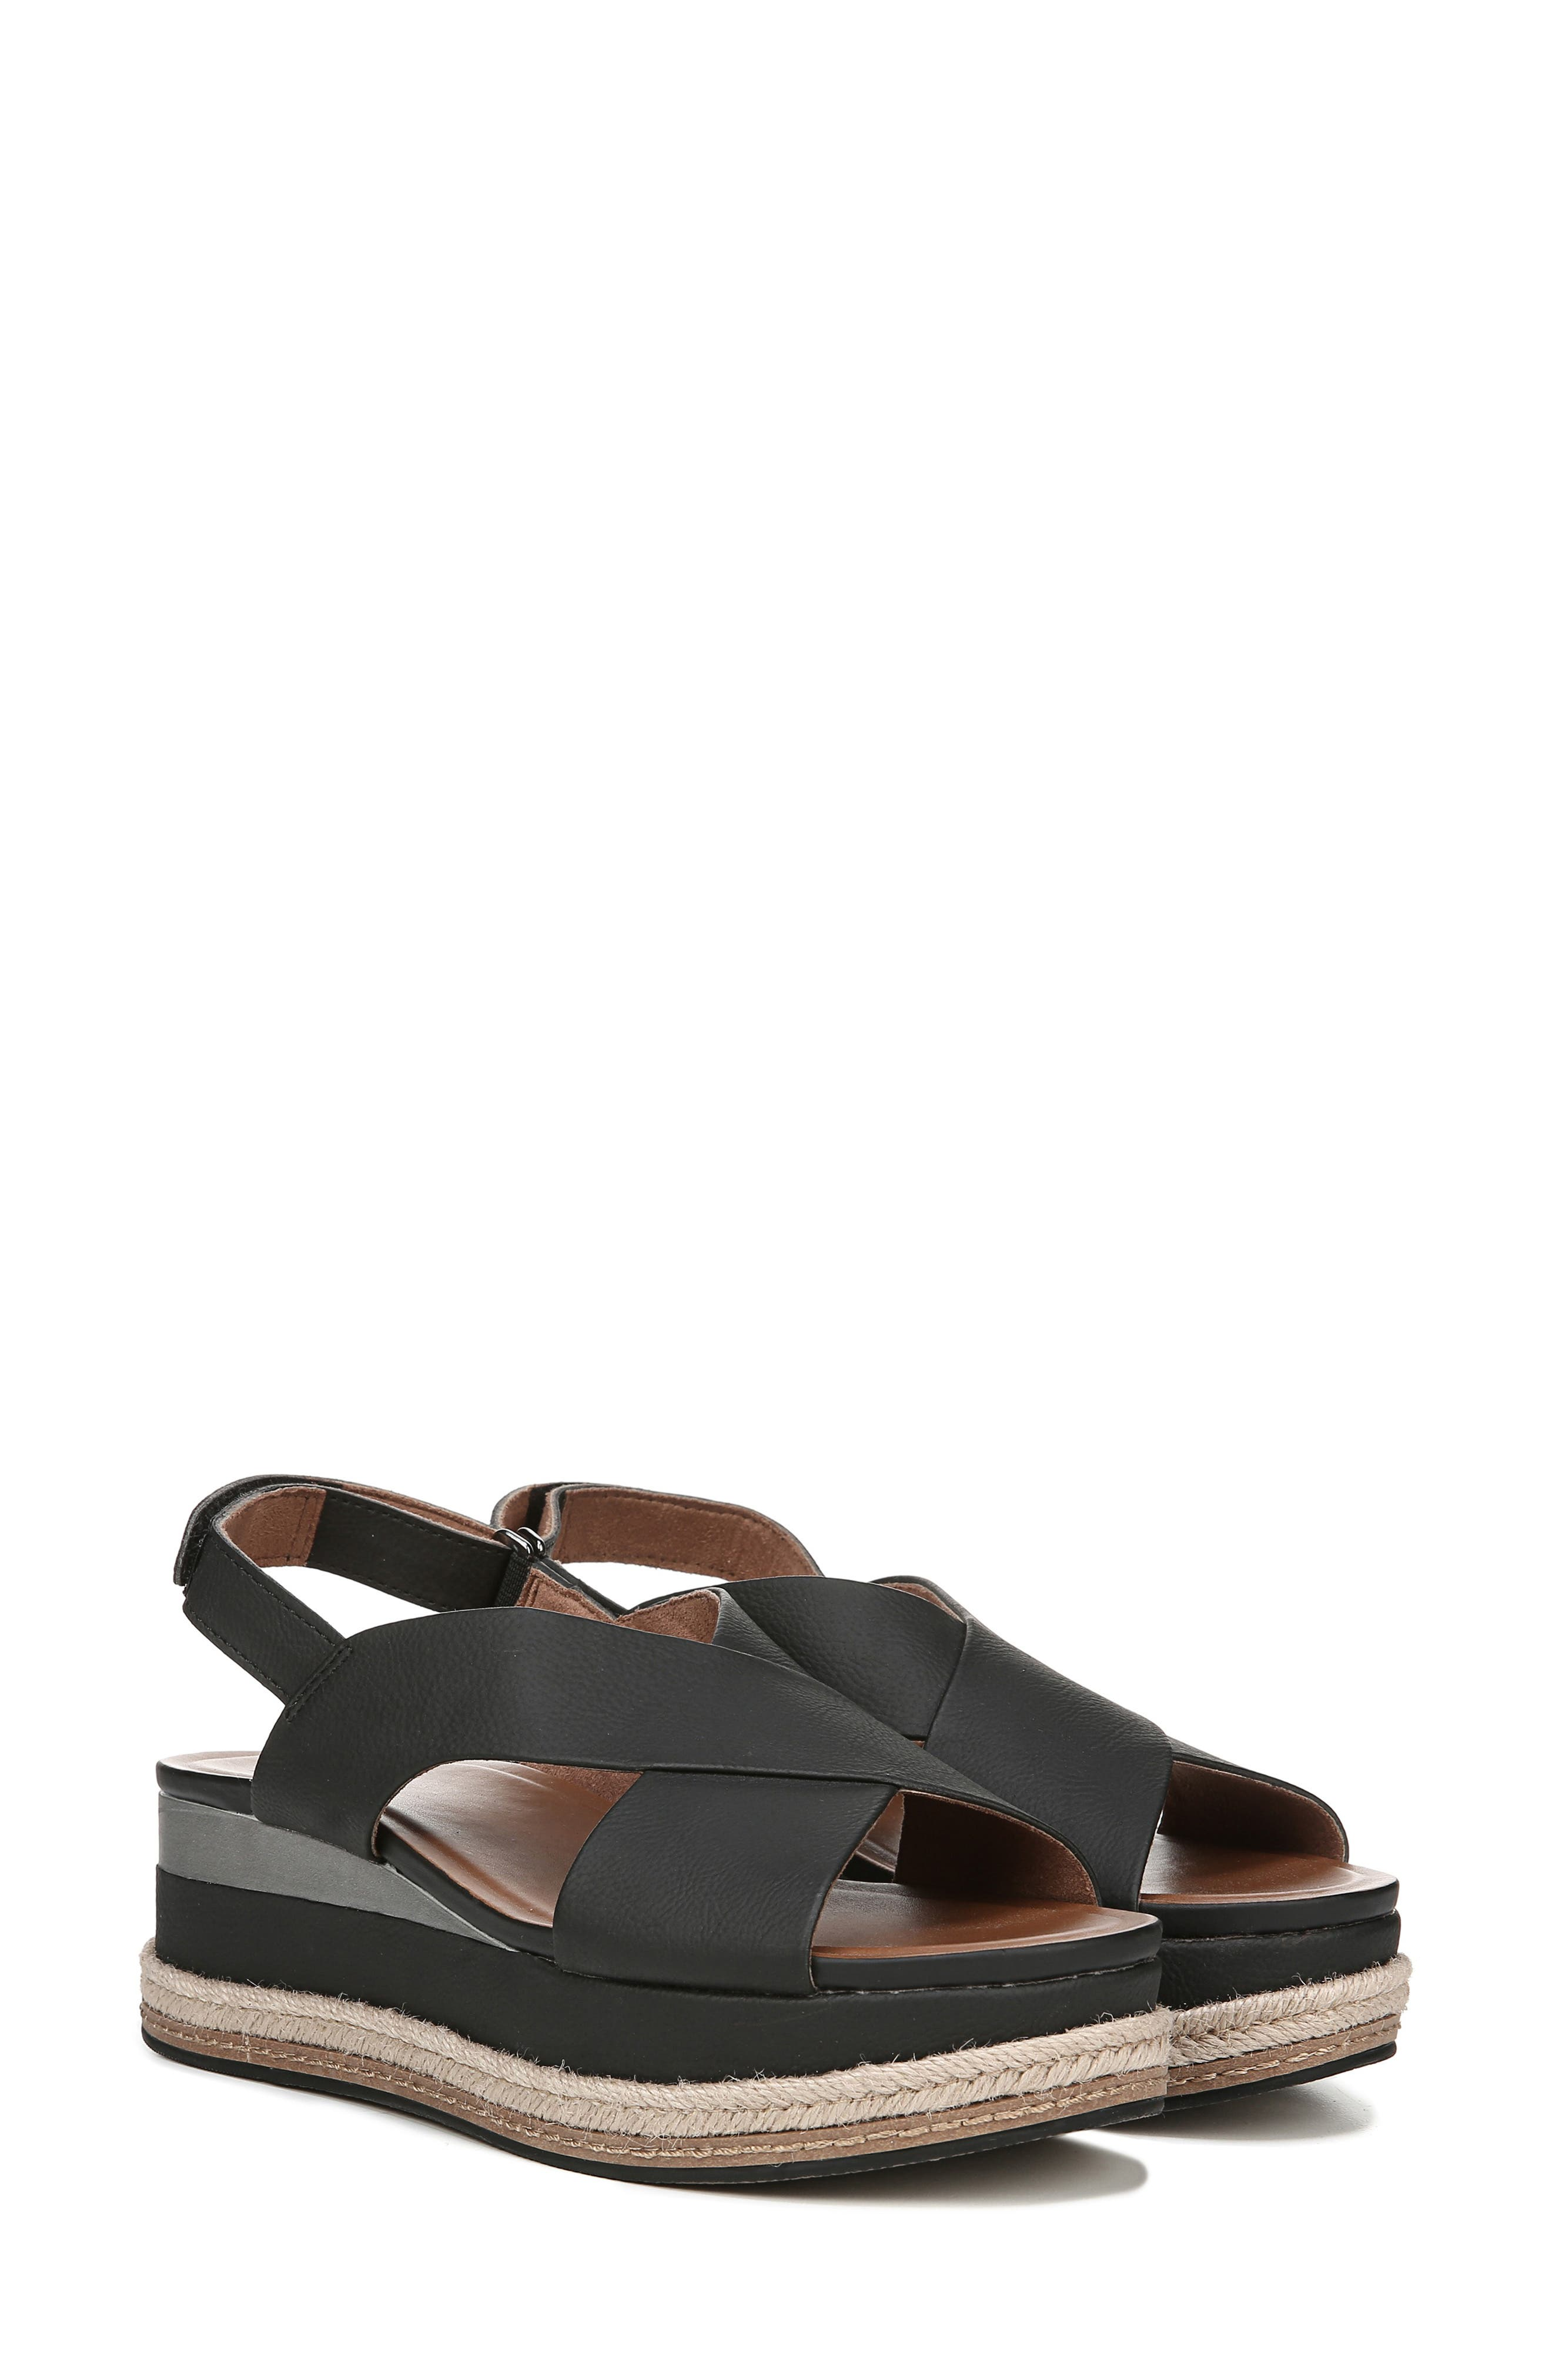 ,                             Baya Espadrille Wedge Sandal,                             Alternate thumbnail 8, color,                             BLACK NUBUCK LEATHER